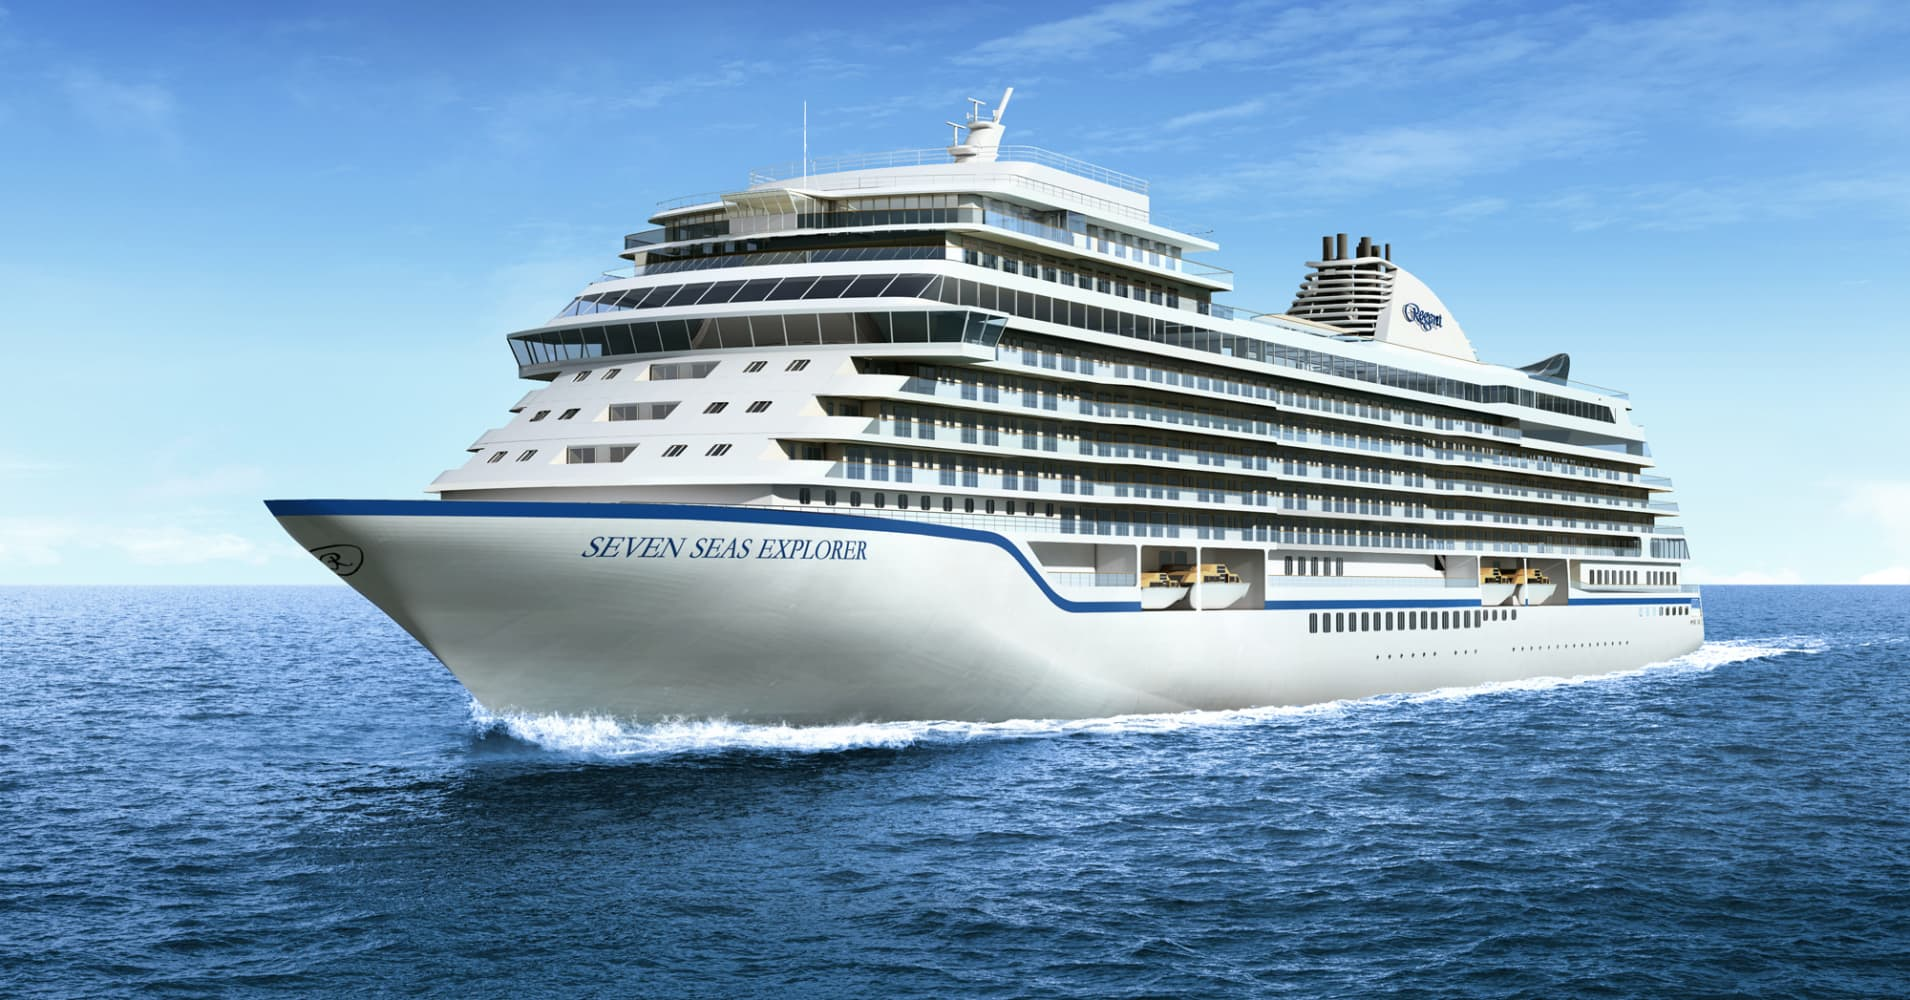 The Seven Seas Explorer